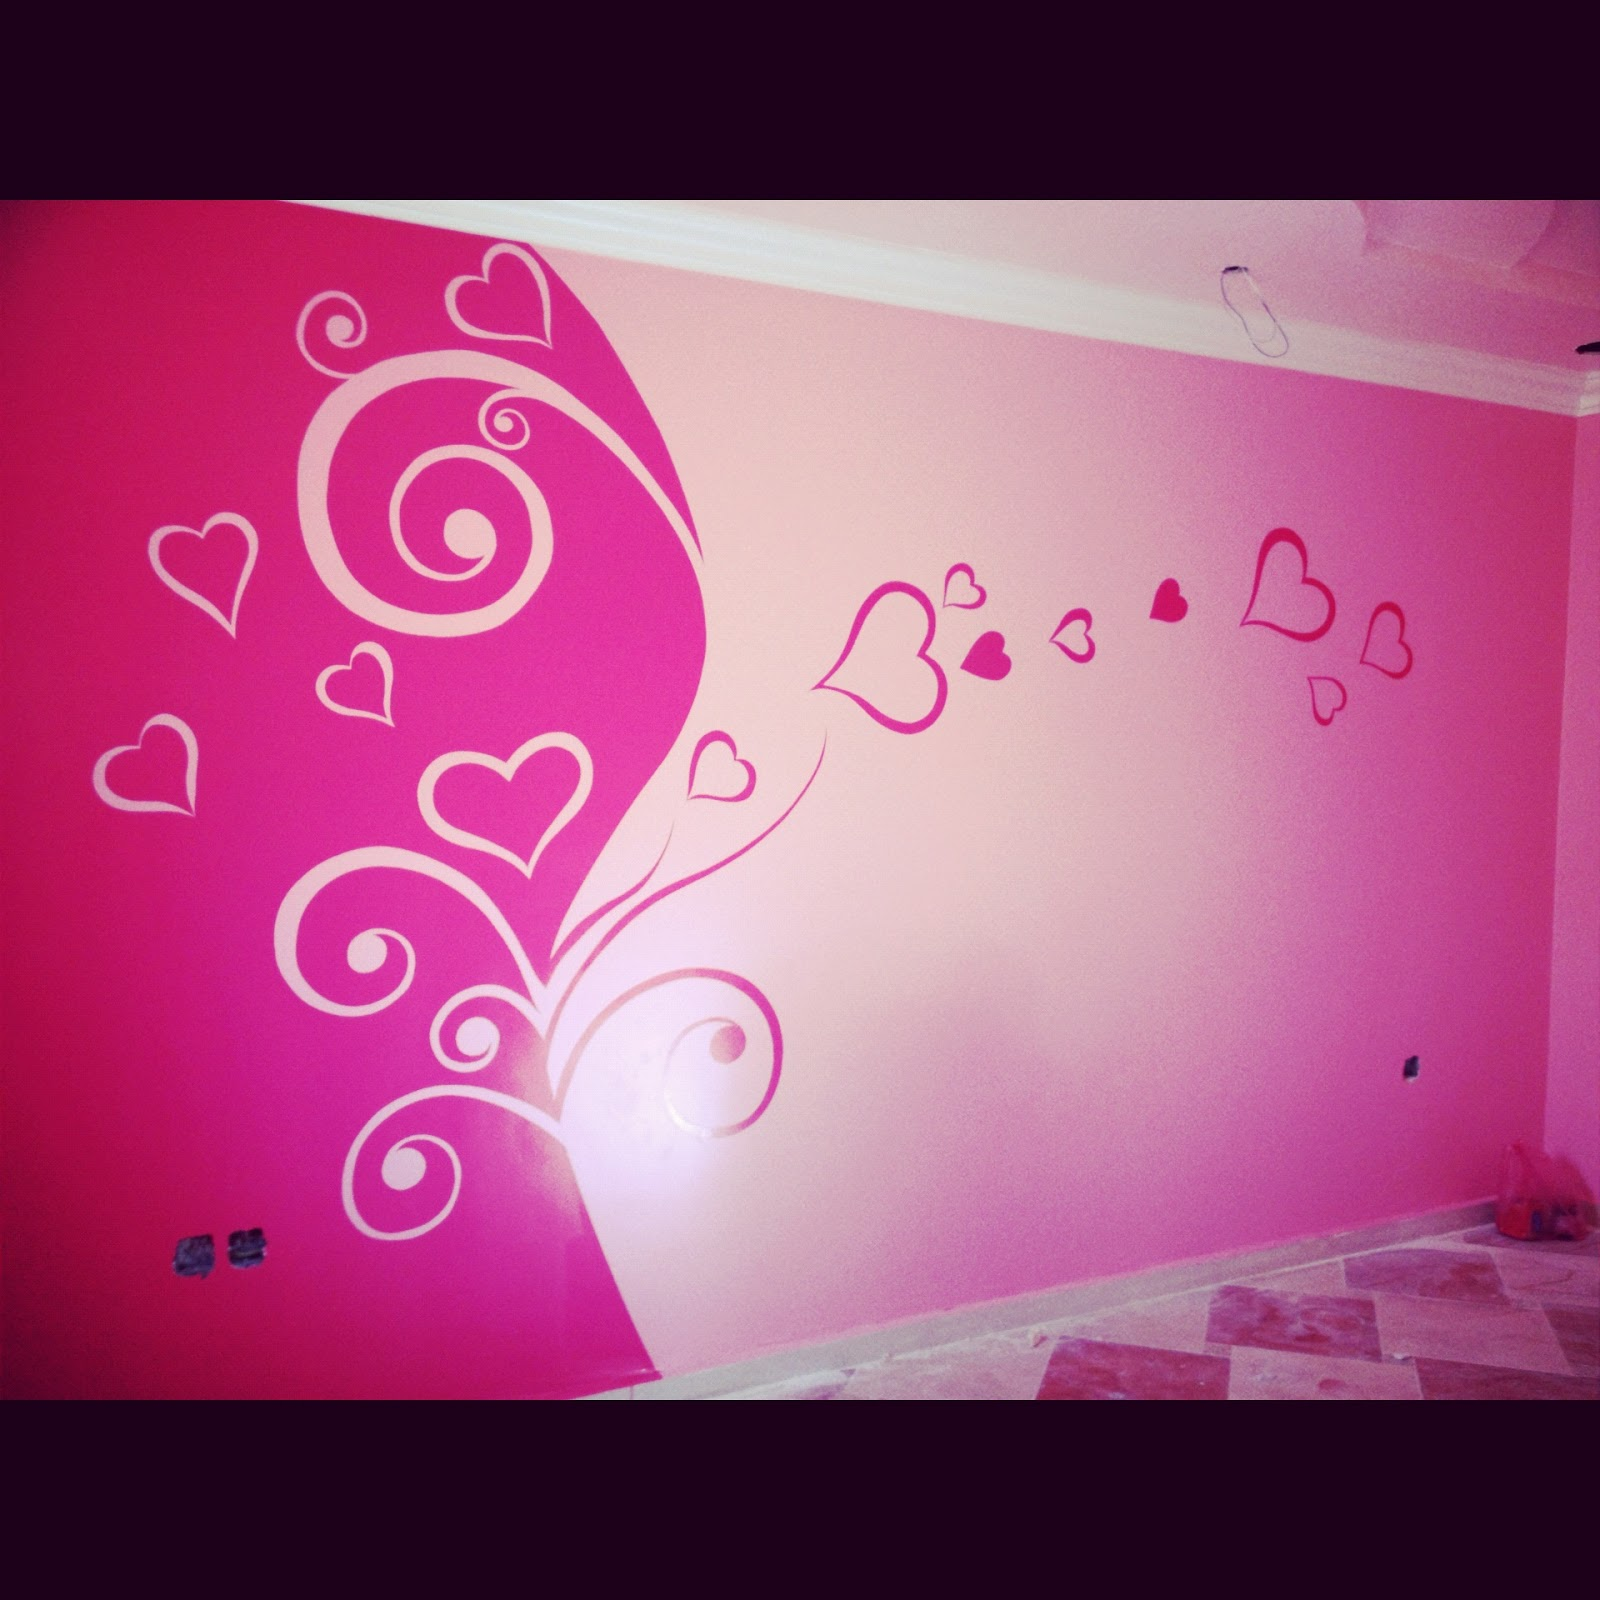 Wall design ideas stencil and hand painted wall stencil and hand painted wall wall design ideas amipublicfo Image collections